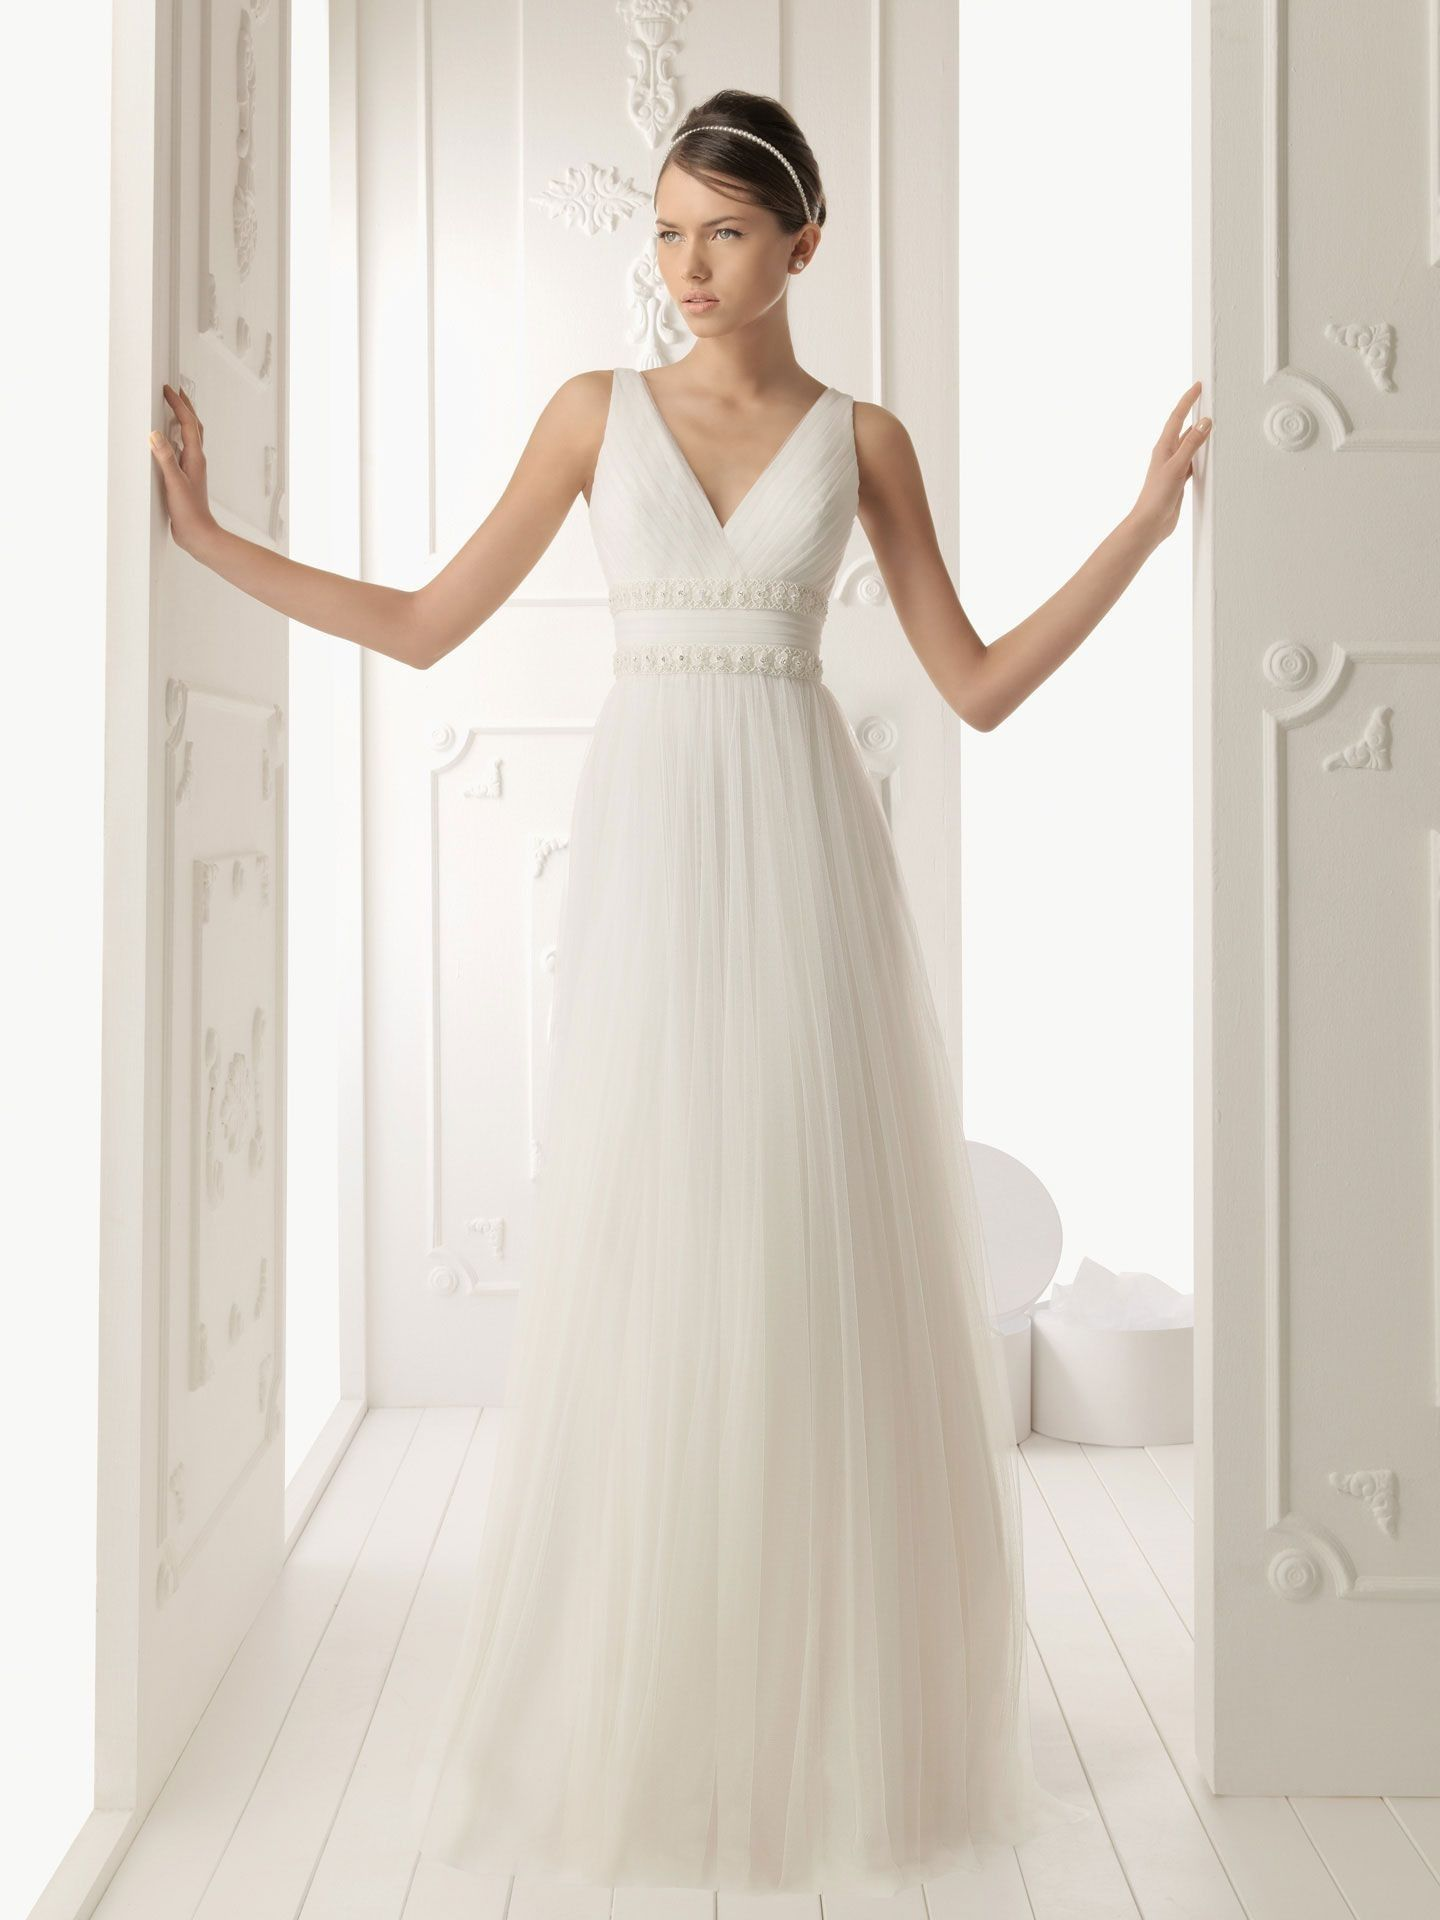 Tulle vneckline sheath style with floral detail waistbands